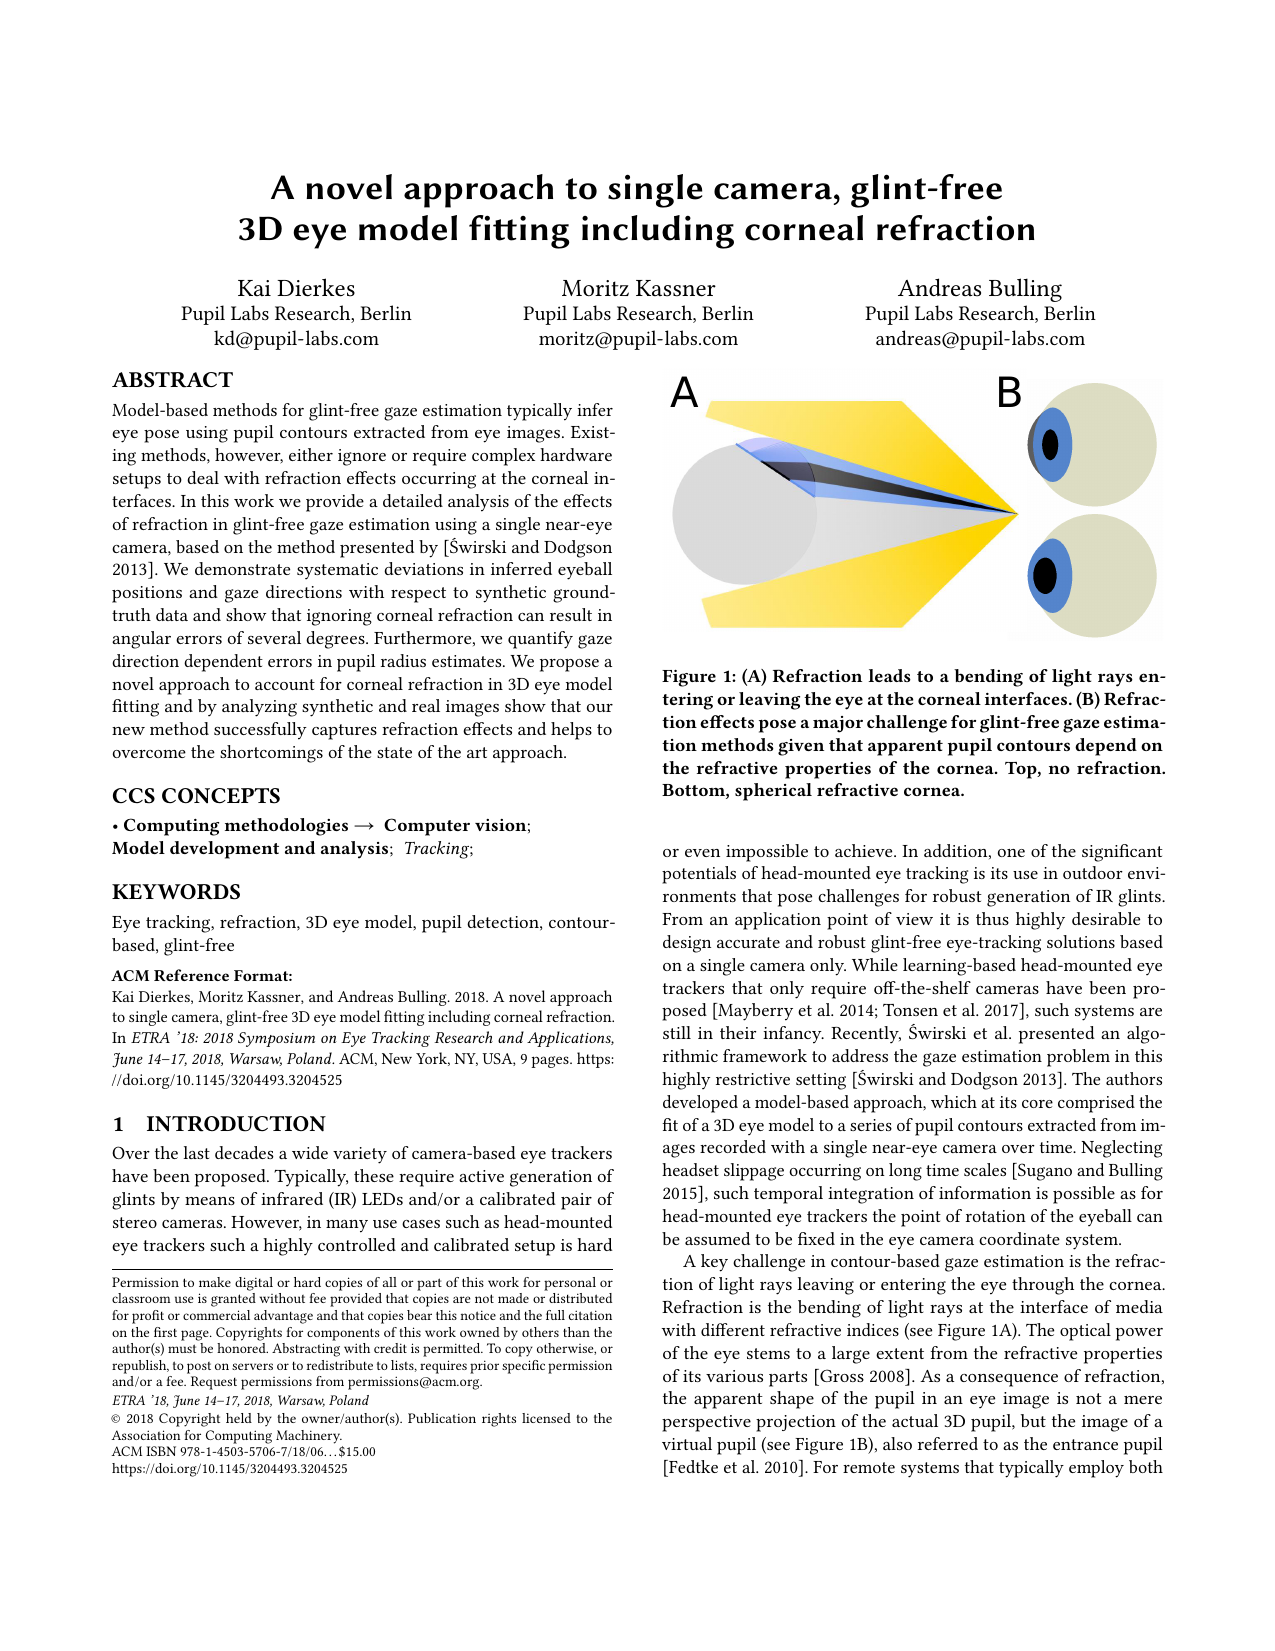 A novel approach to single camera, glint-free 3D eye model fitting including corneal refraction